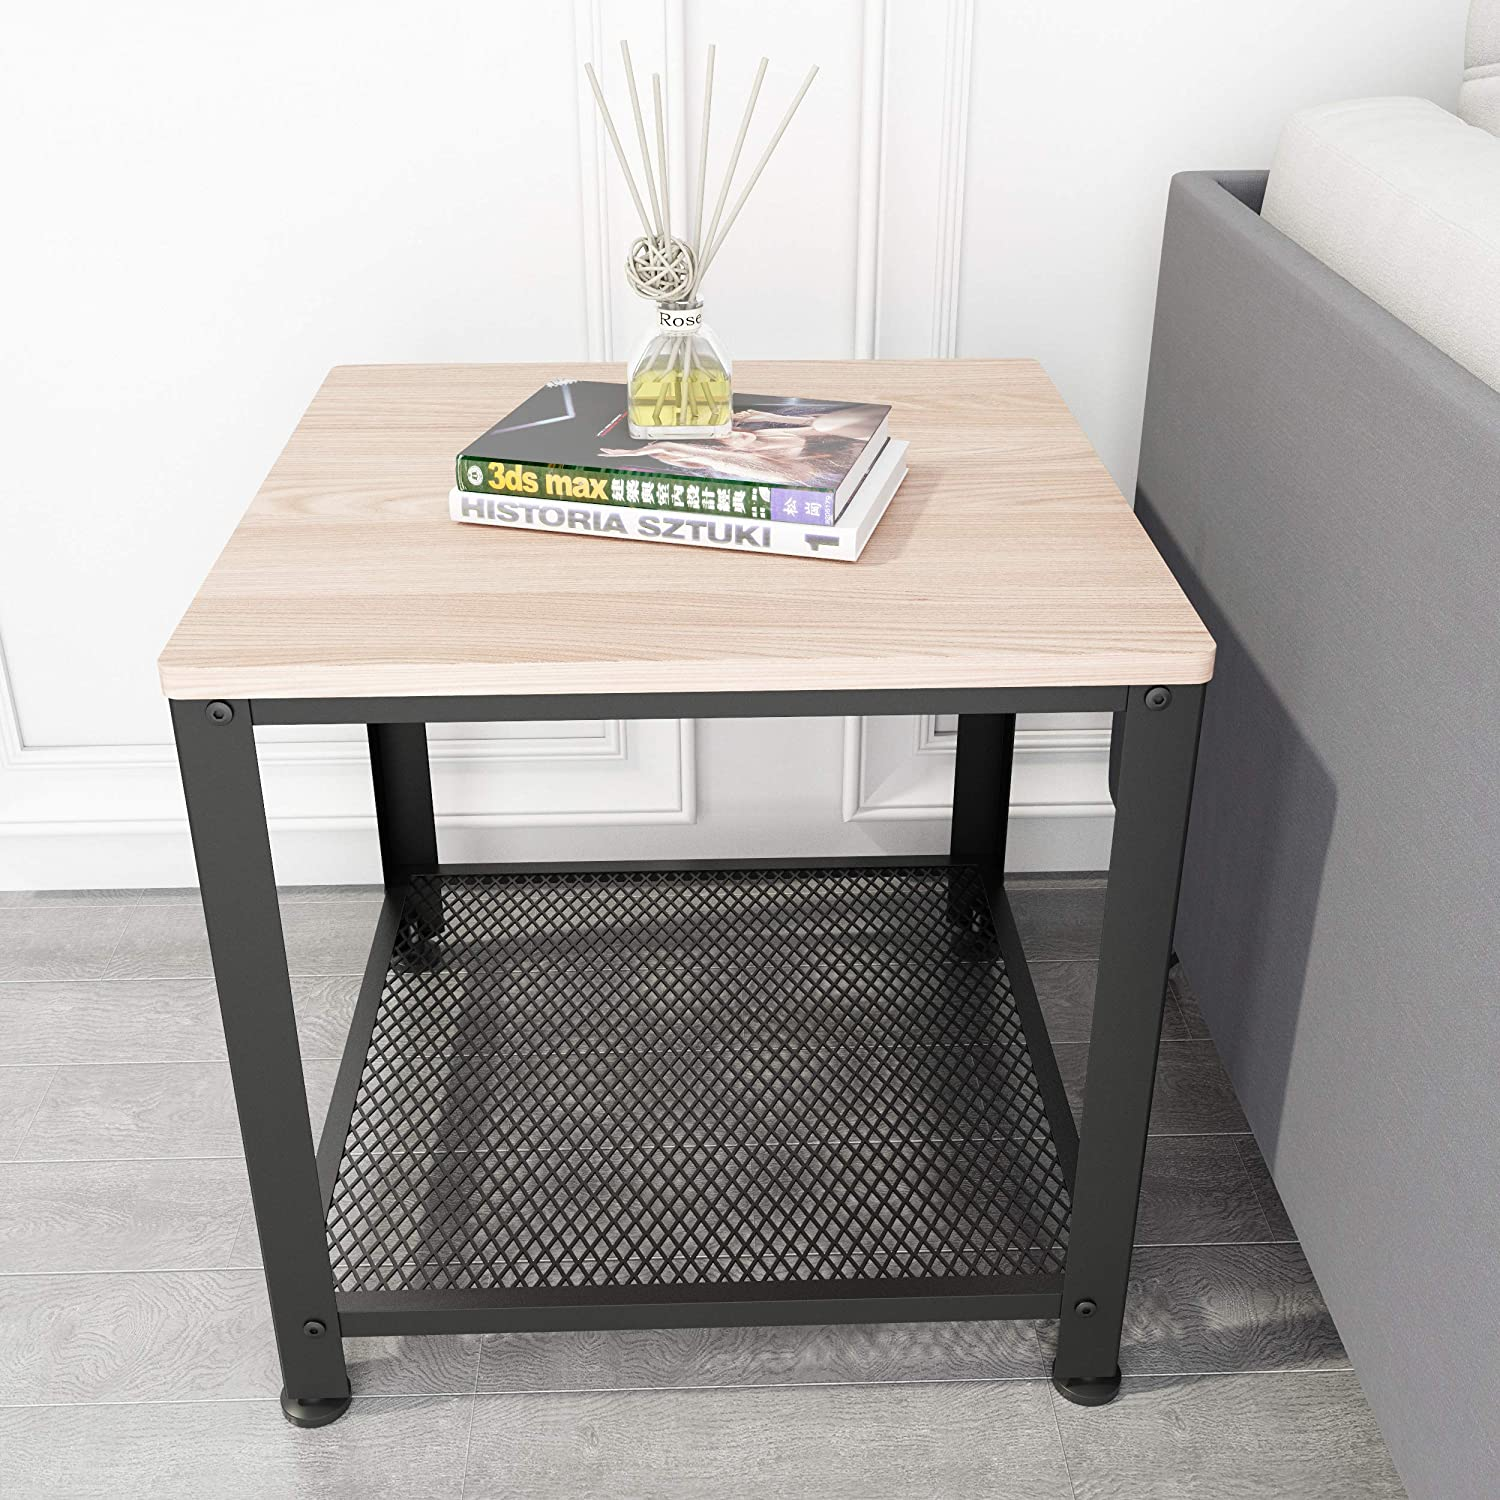 SIMPDIY Industrial End Table,Side Table, Square Coffee Table for Small Spaces, Bedroom, Living Room, Dorm, Office (White Oak Finish)